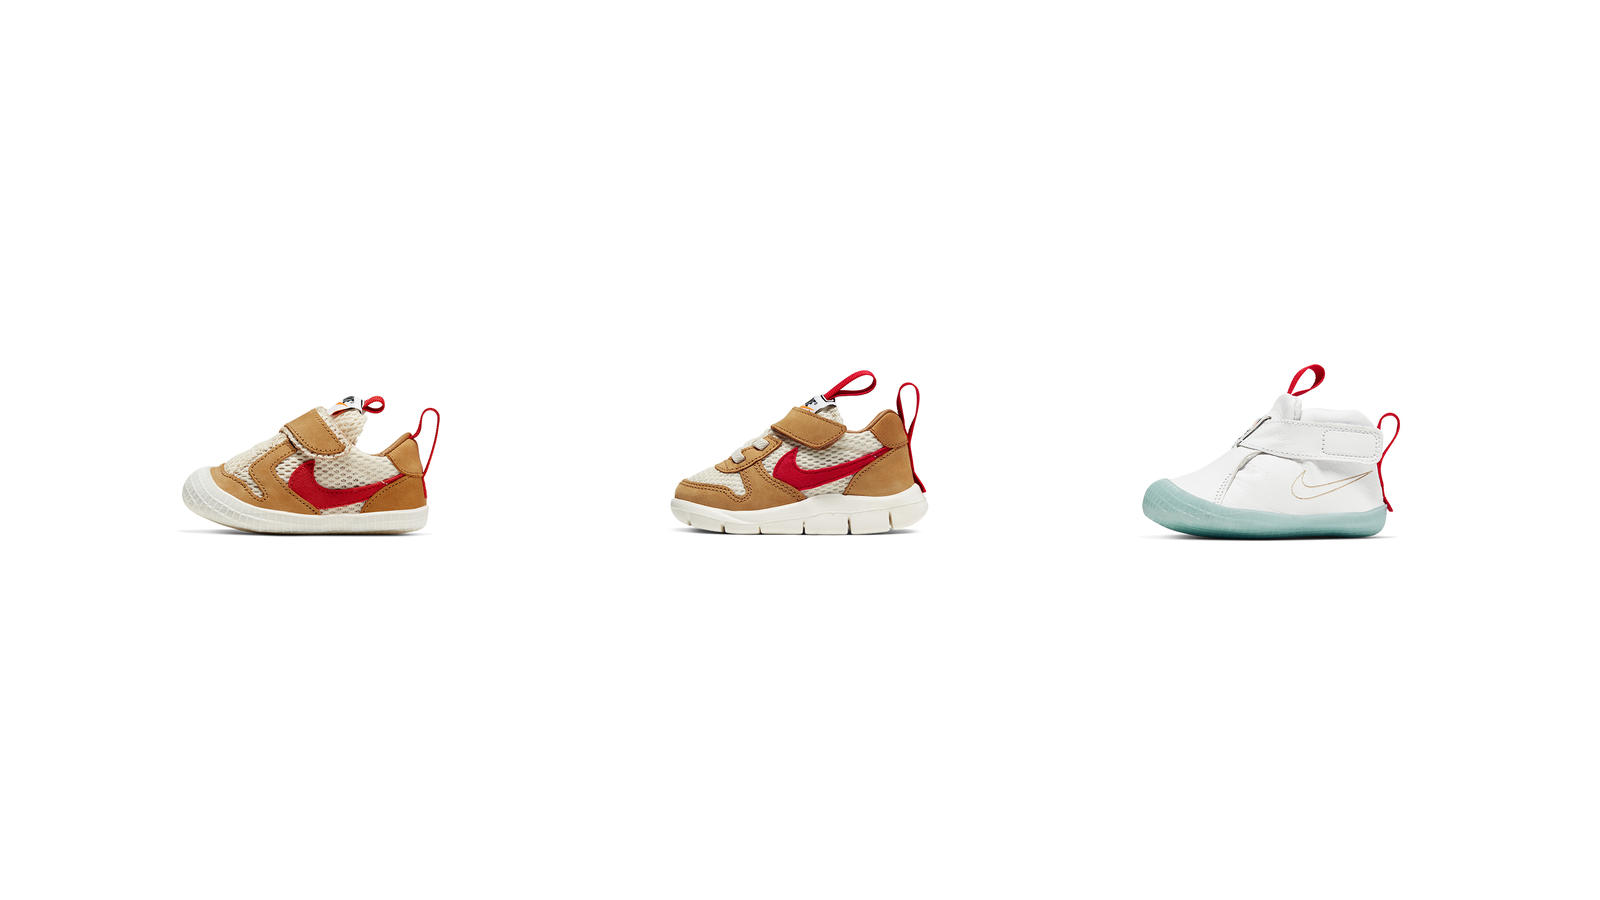 Nike x Tom Sachs Mars Yard Kids Sizes  1